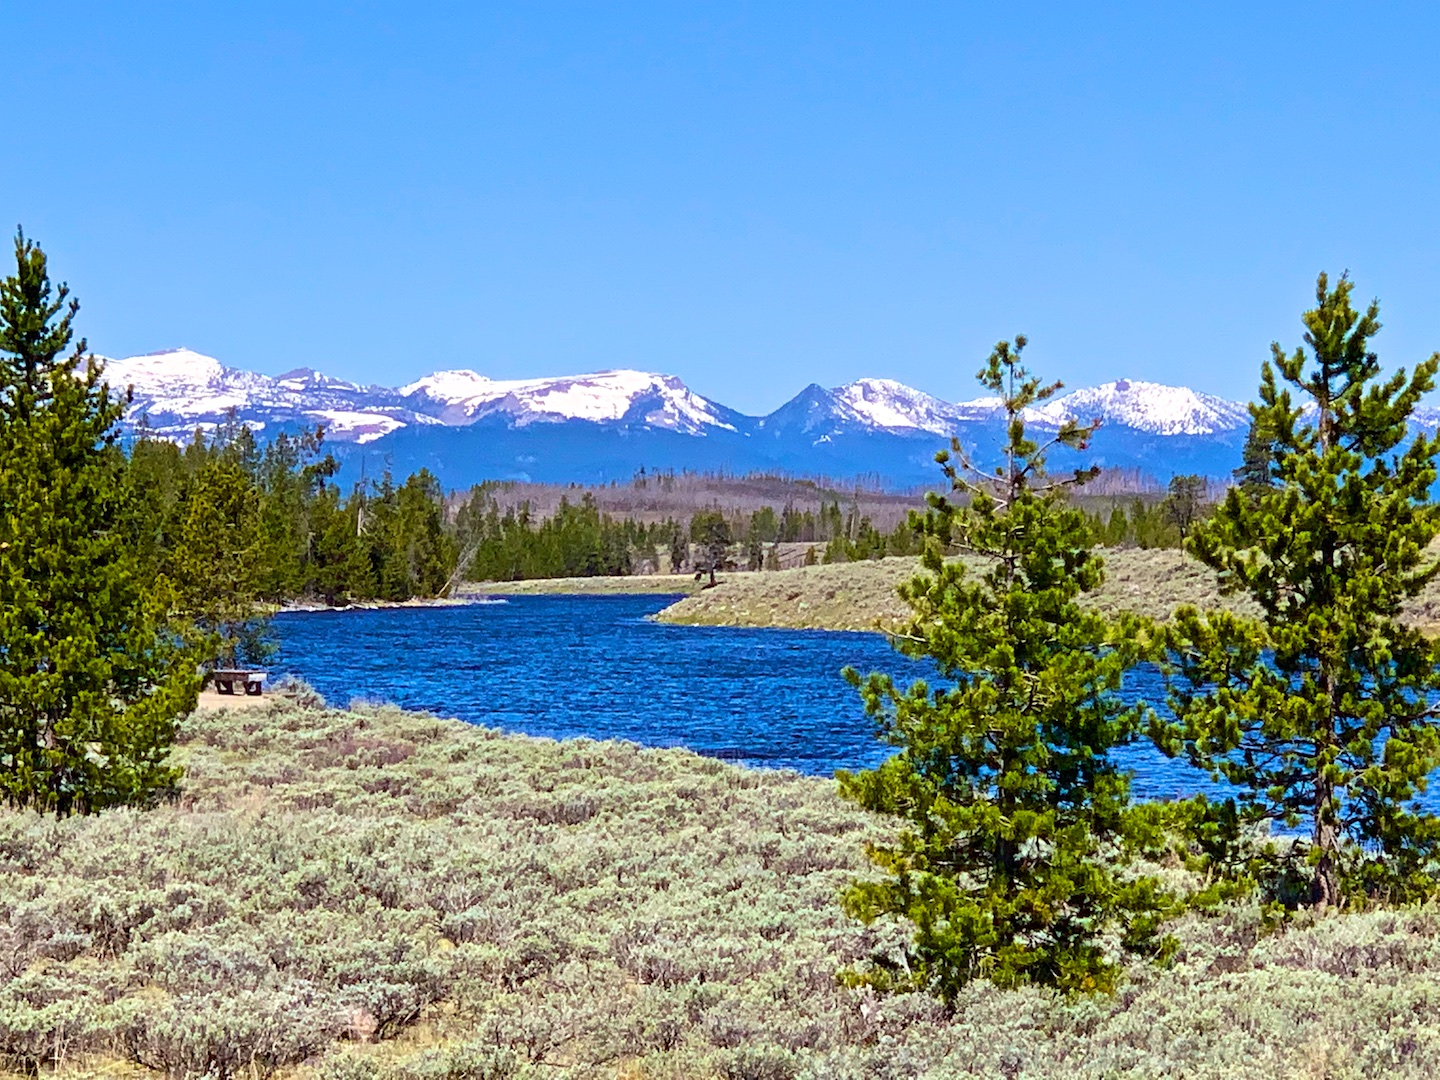 Edge of the Madison River, Yellowstone National Park, USA